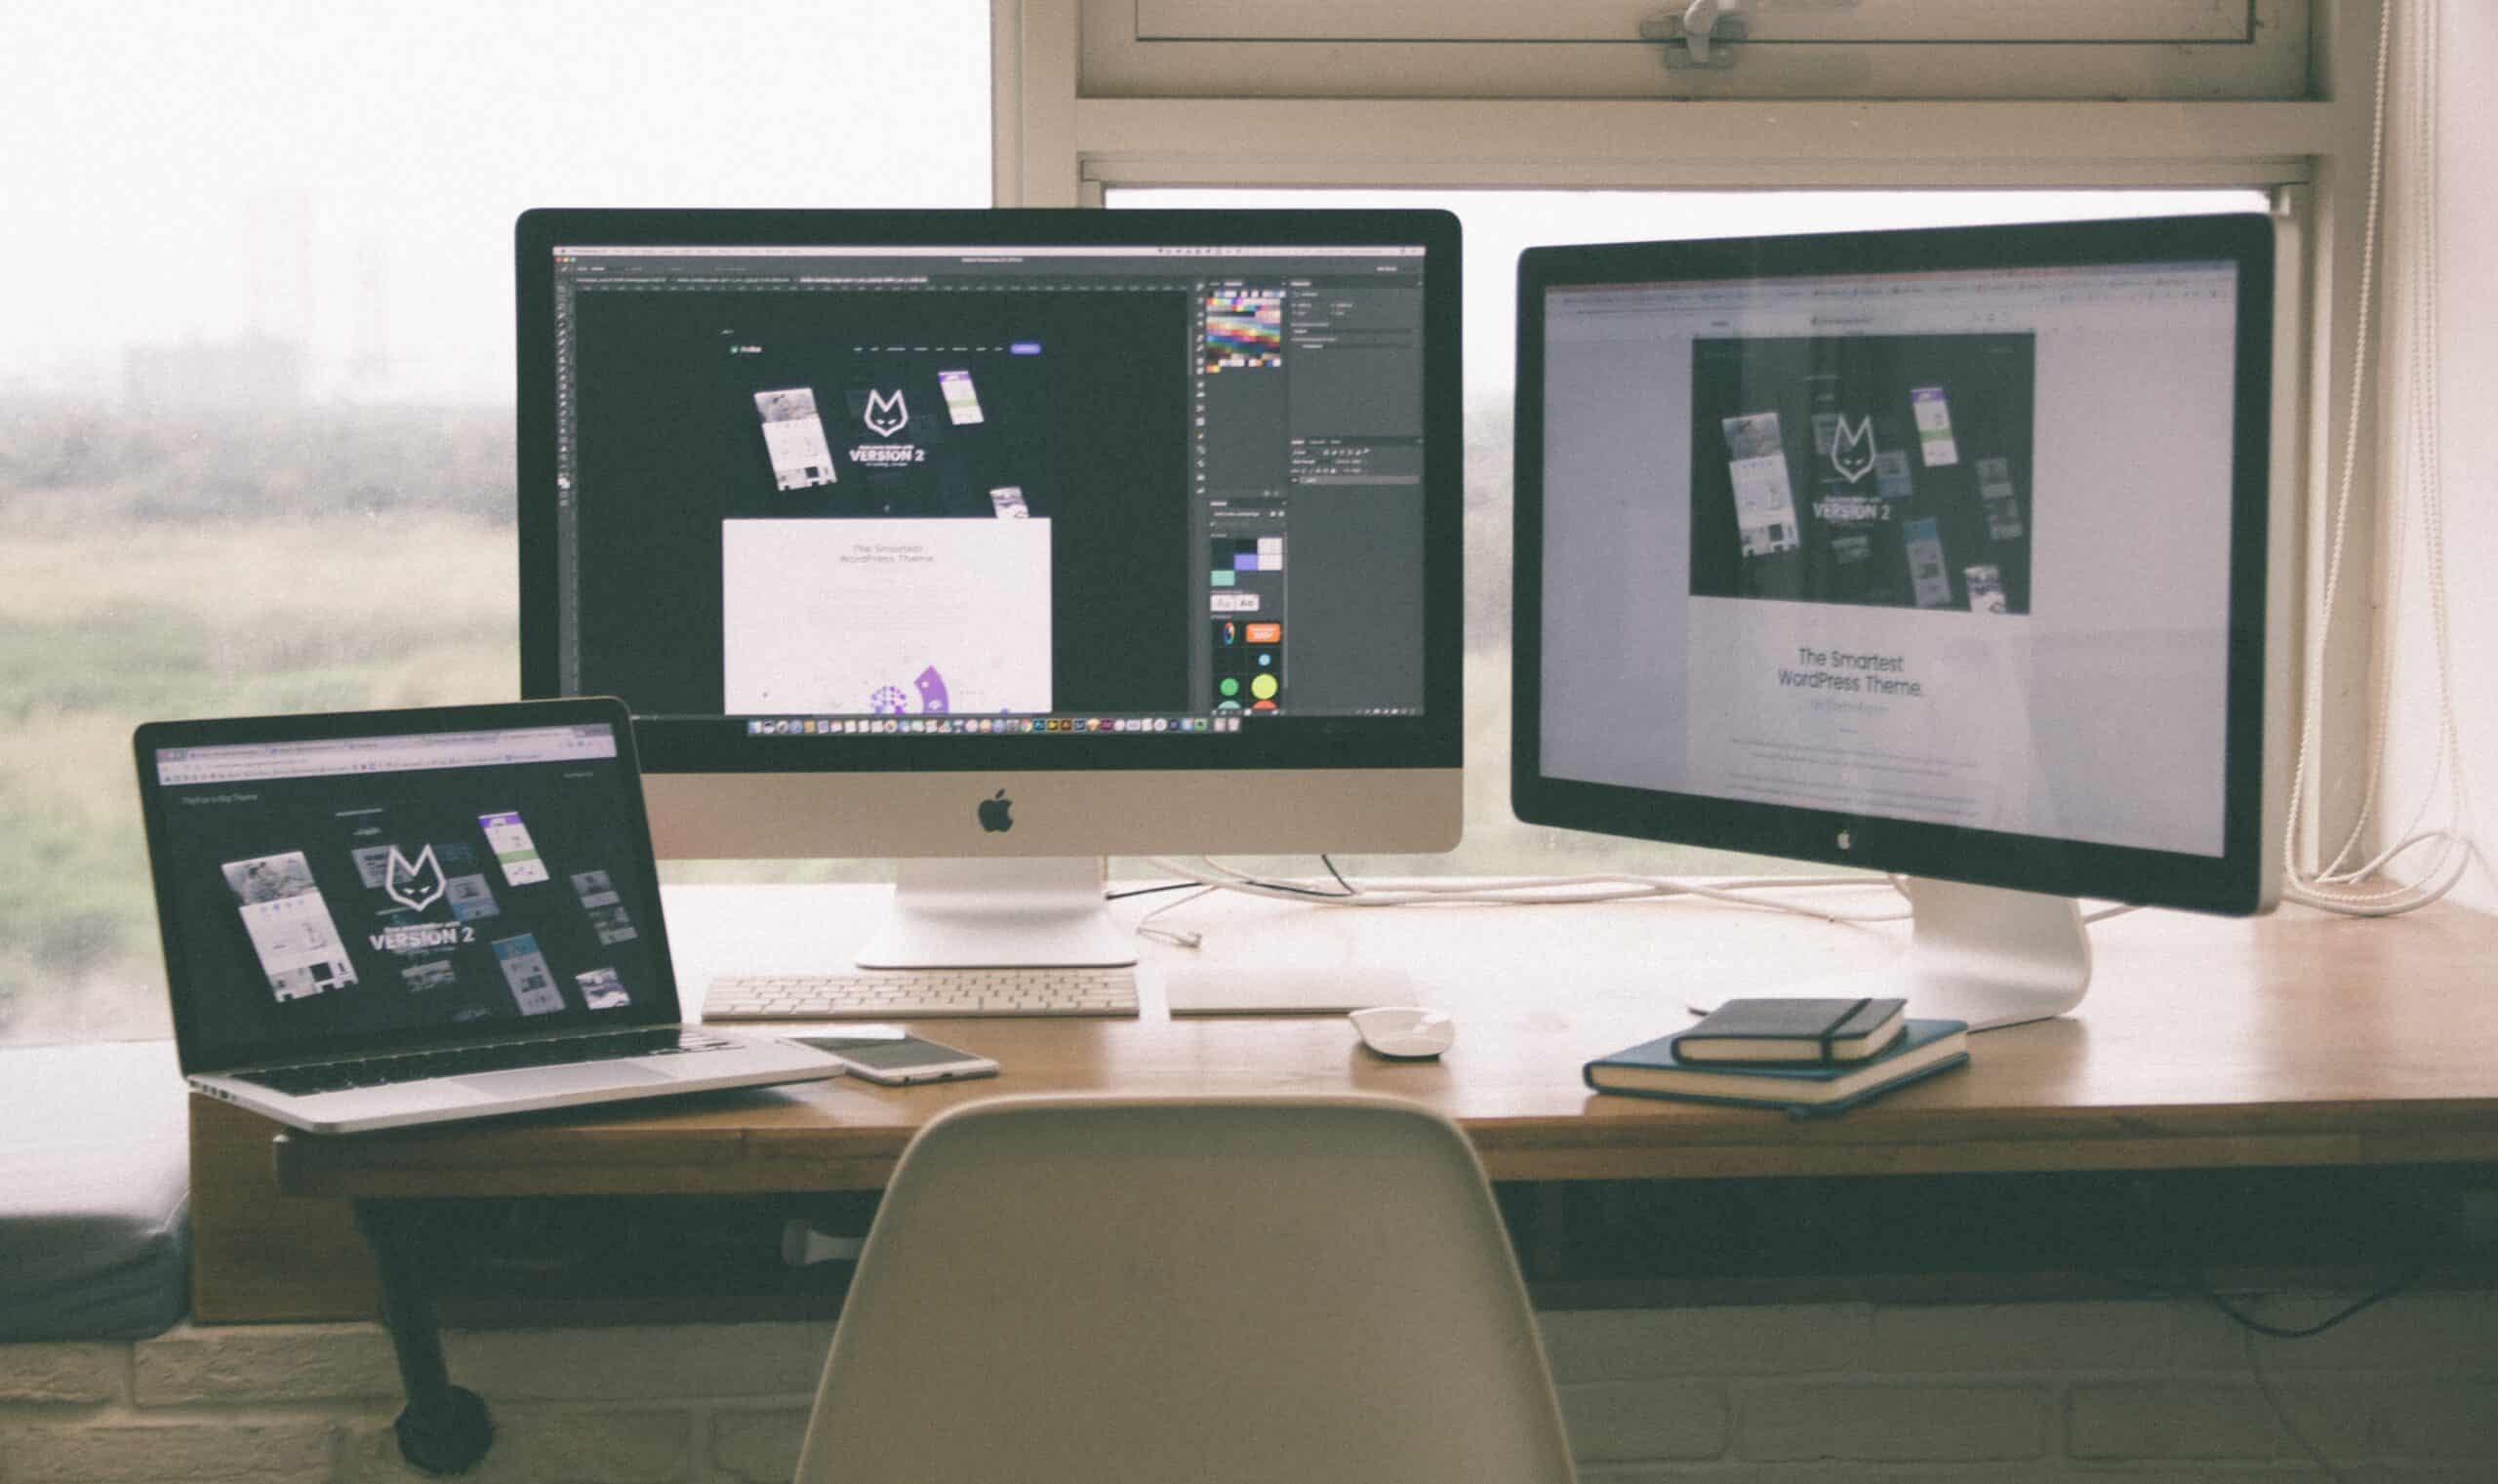 Web designing can be a great source of income